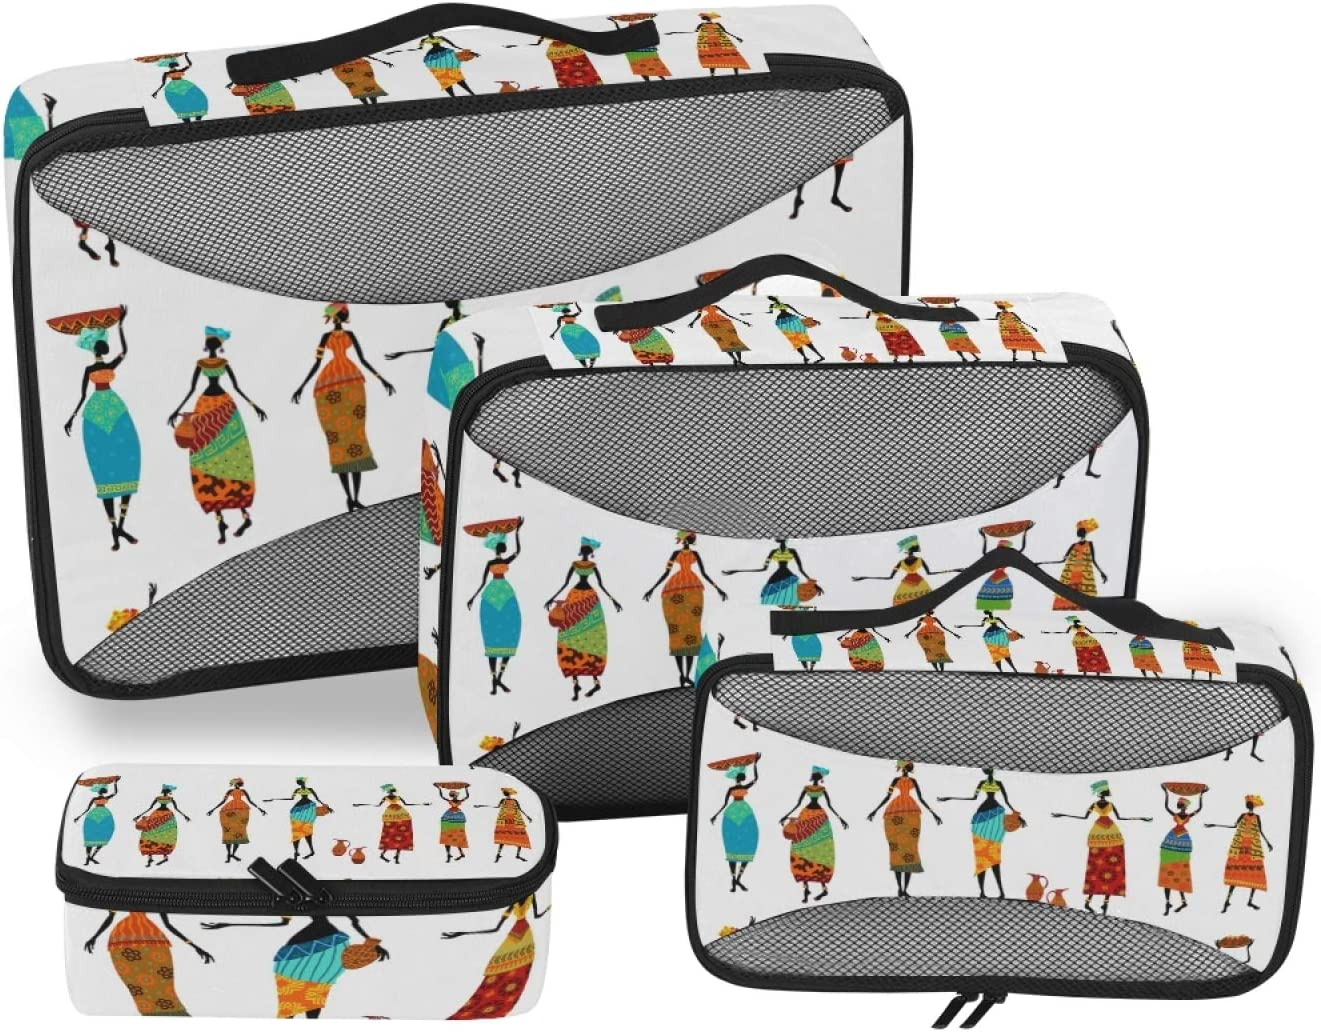 African Woman Packing Storage OFFicial mail order Bag Organizer Travel 2021 4-Pcs Accesso